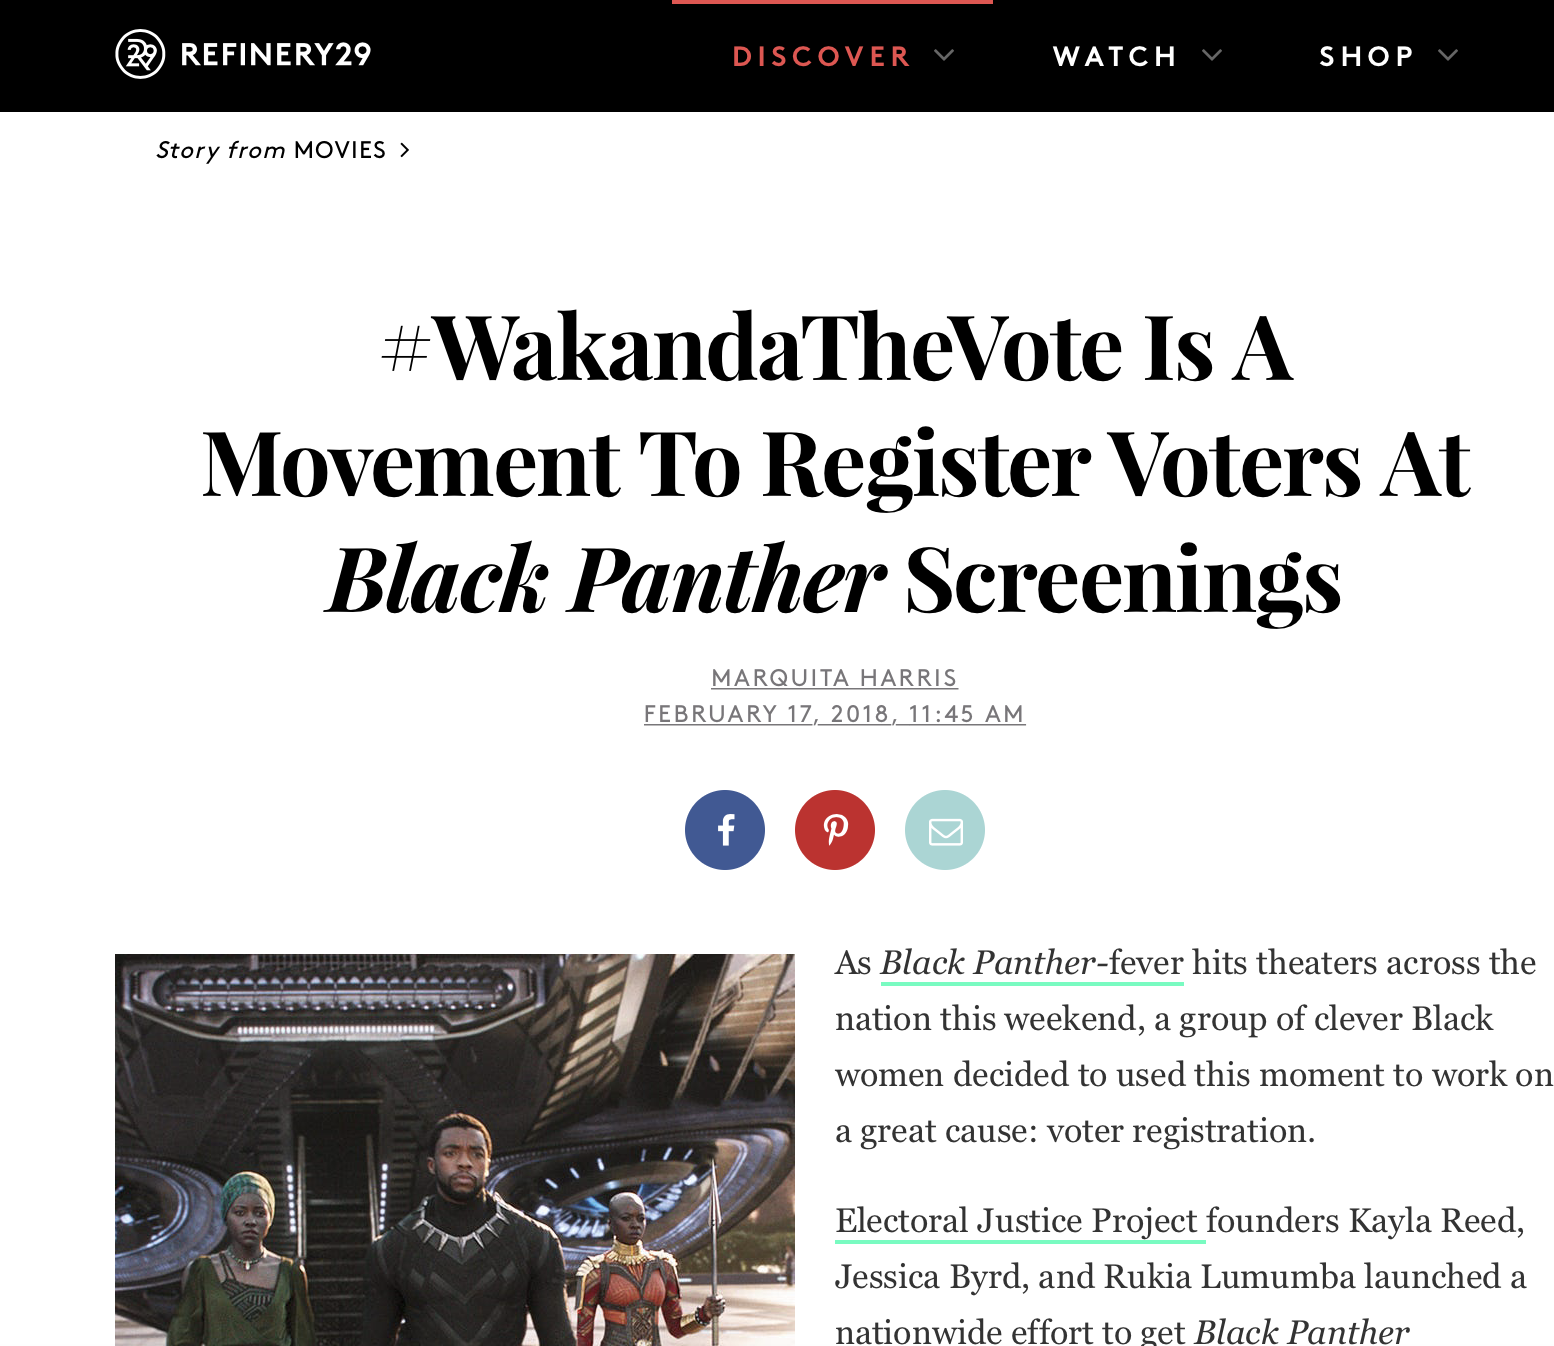 #WakandaTheVote Is A Movement To Register Voters At Black Panther Screenings